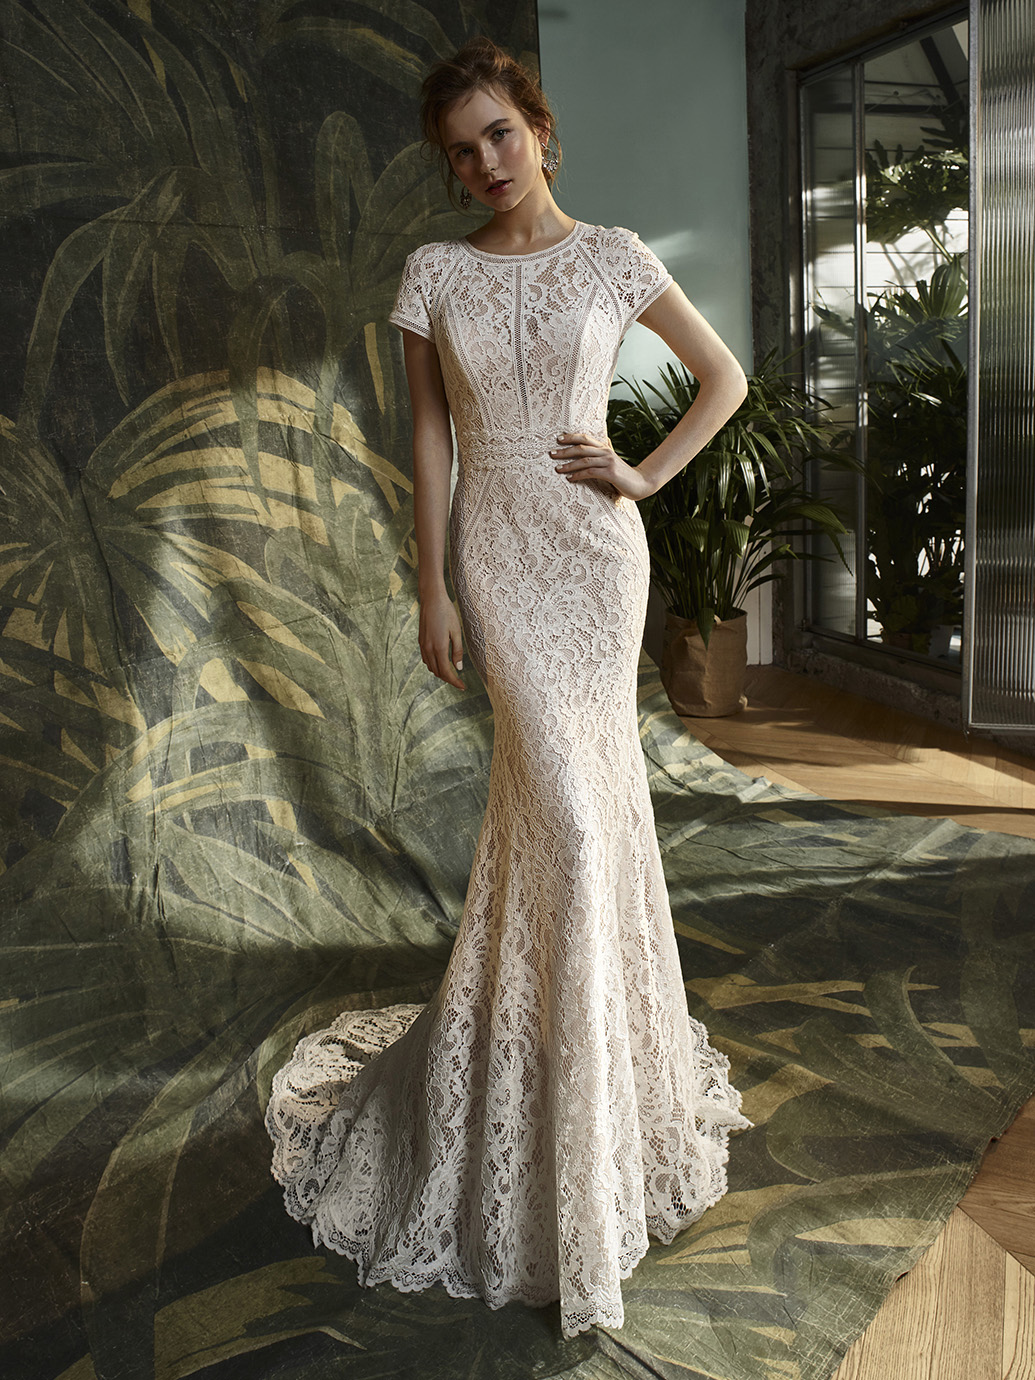 Blue by Enzoani Keaton - there is so many different laces to choose from you are bound to find one you love.